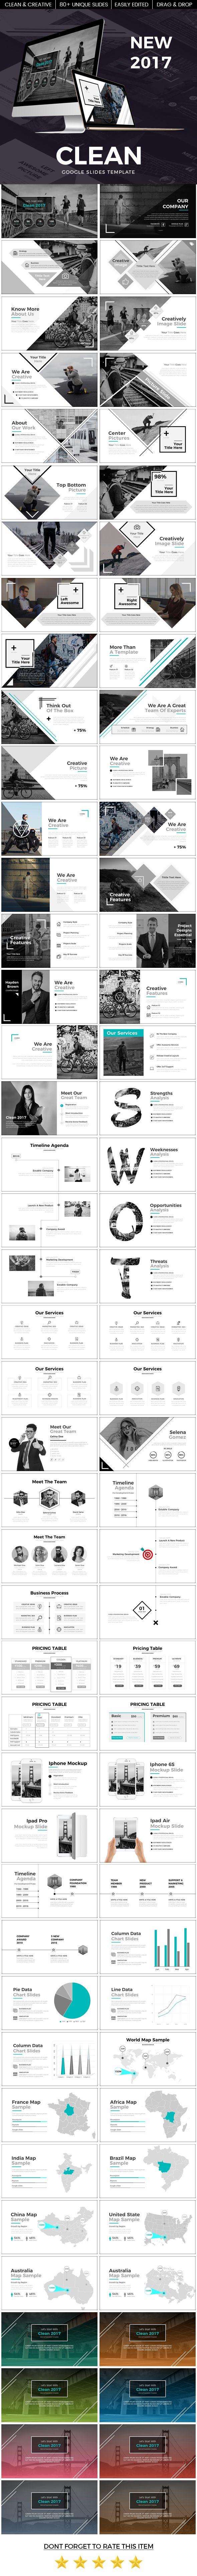 Clean 2017 Google Slide Template - Google Slides #Presentation #Templates Download here: https://graphicriver.net/item/clean-2017-google-slide-template/19742859?ref=alena994